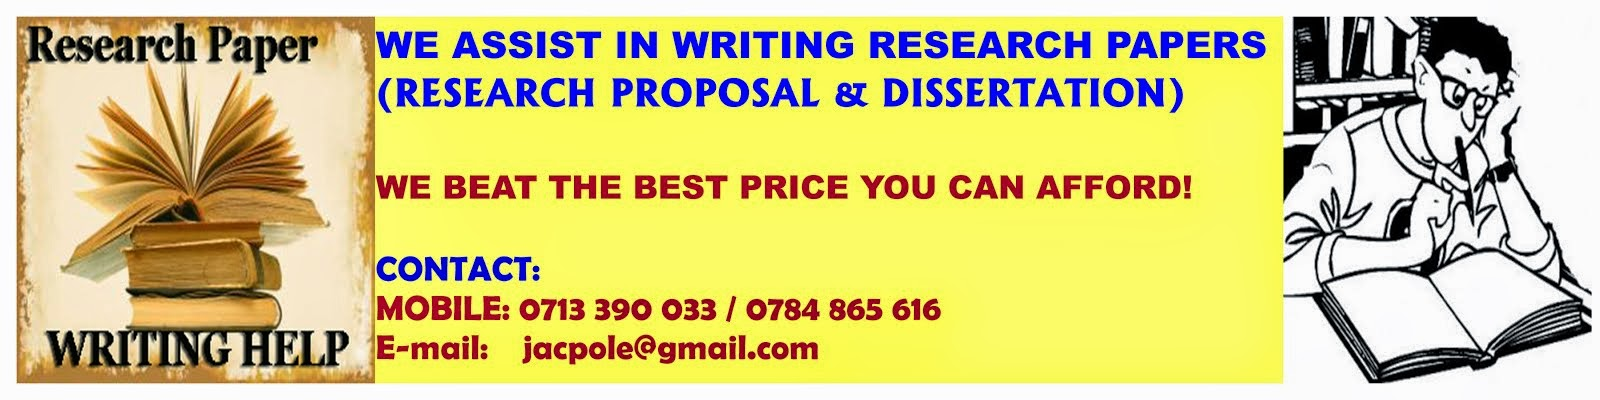 RESEARCH AD